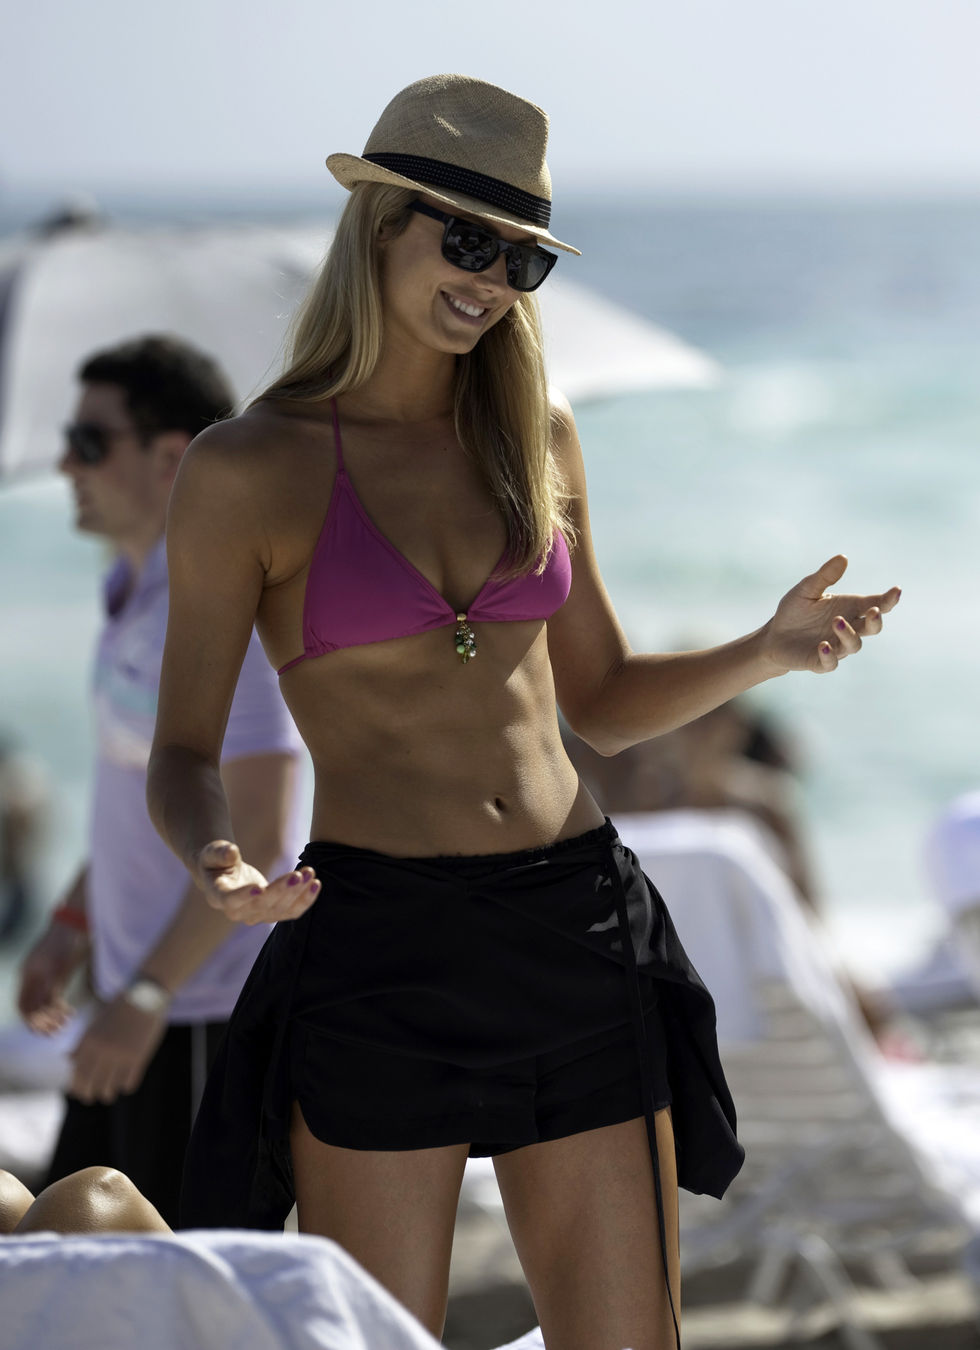 stacy-keibler-in-bikini-at-the-beach-in-miami-01